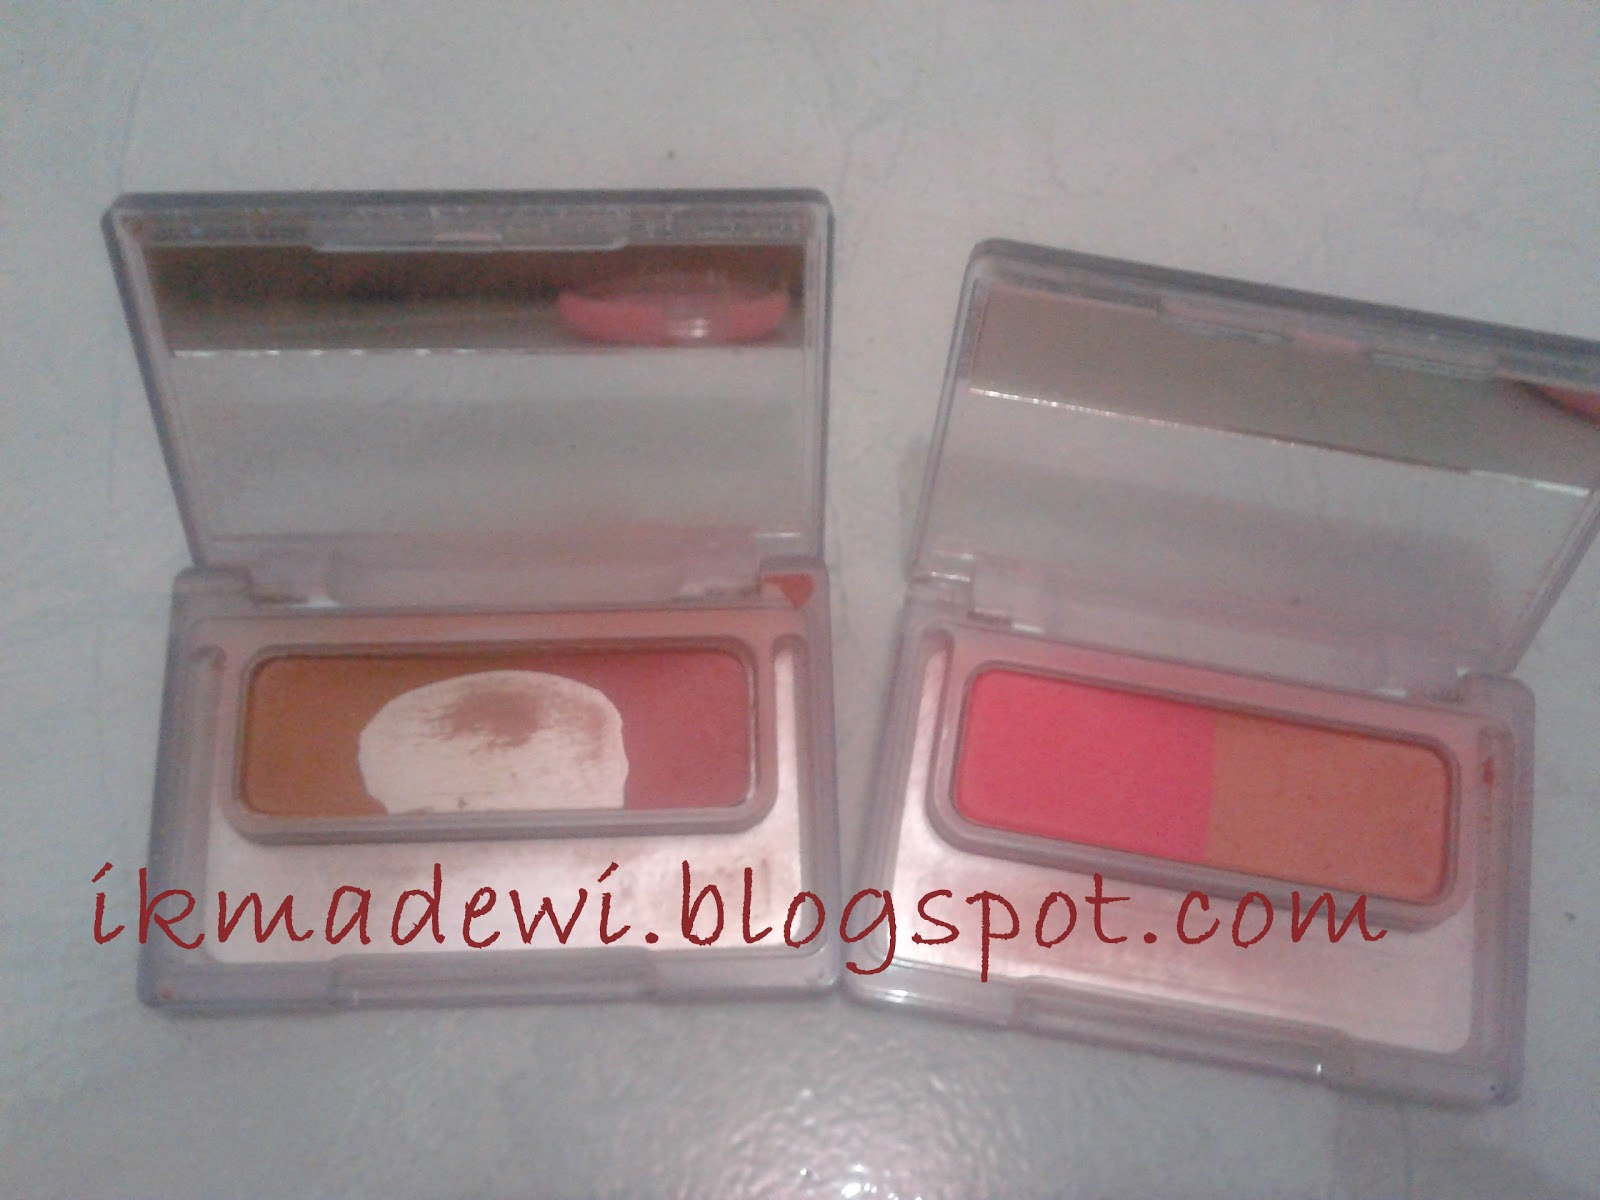 Comparison Blush on